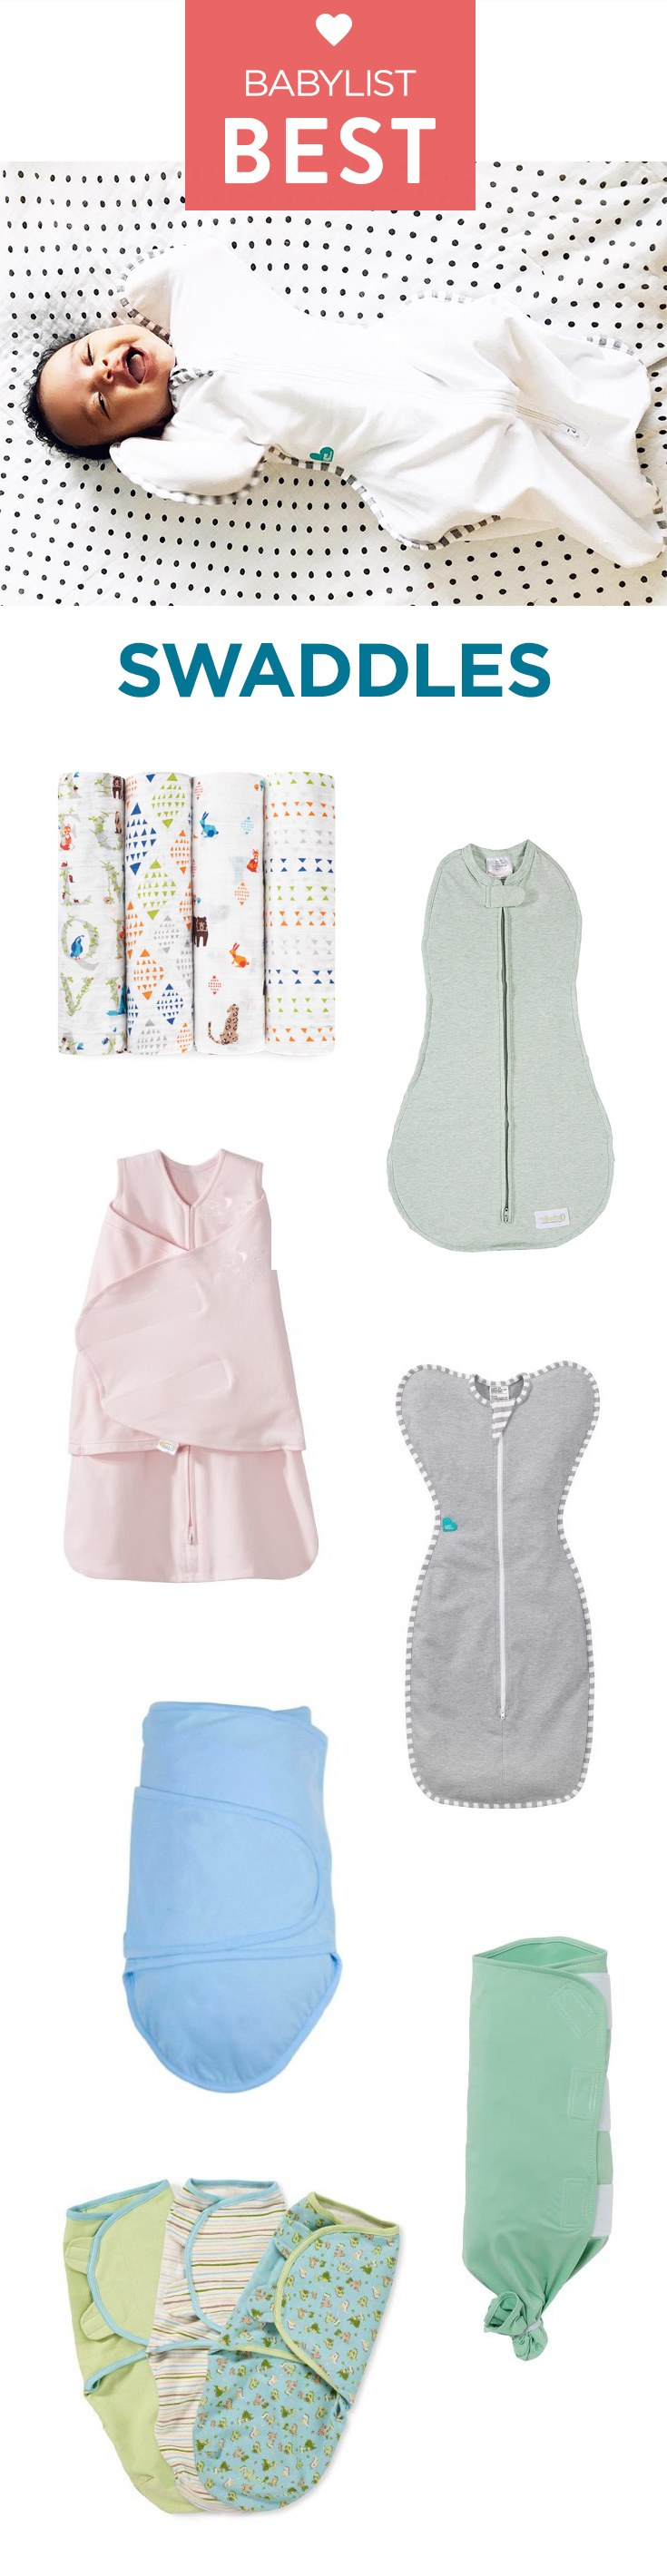 A good swaddle helps soothe your baby (and give you some soothing peace and quiet).